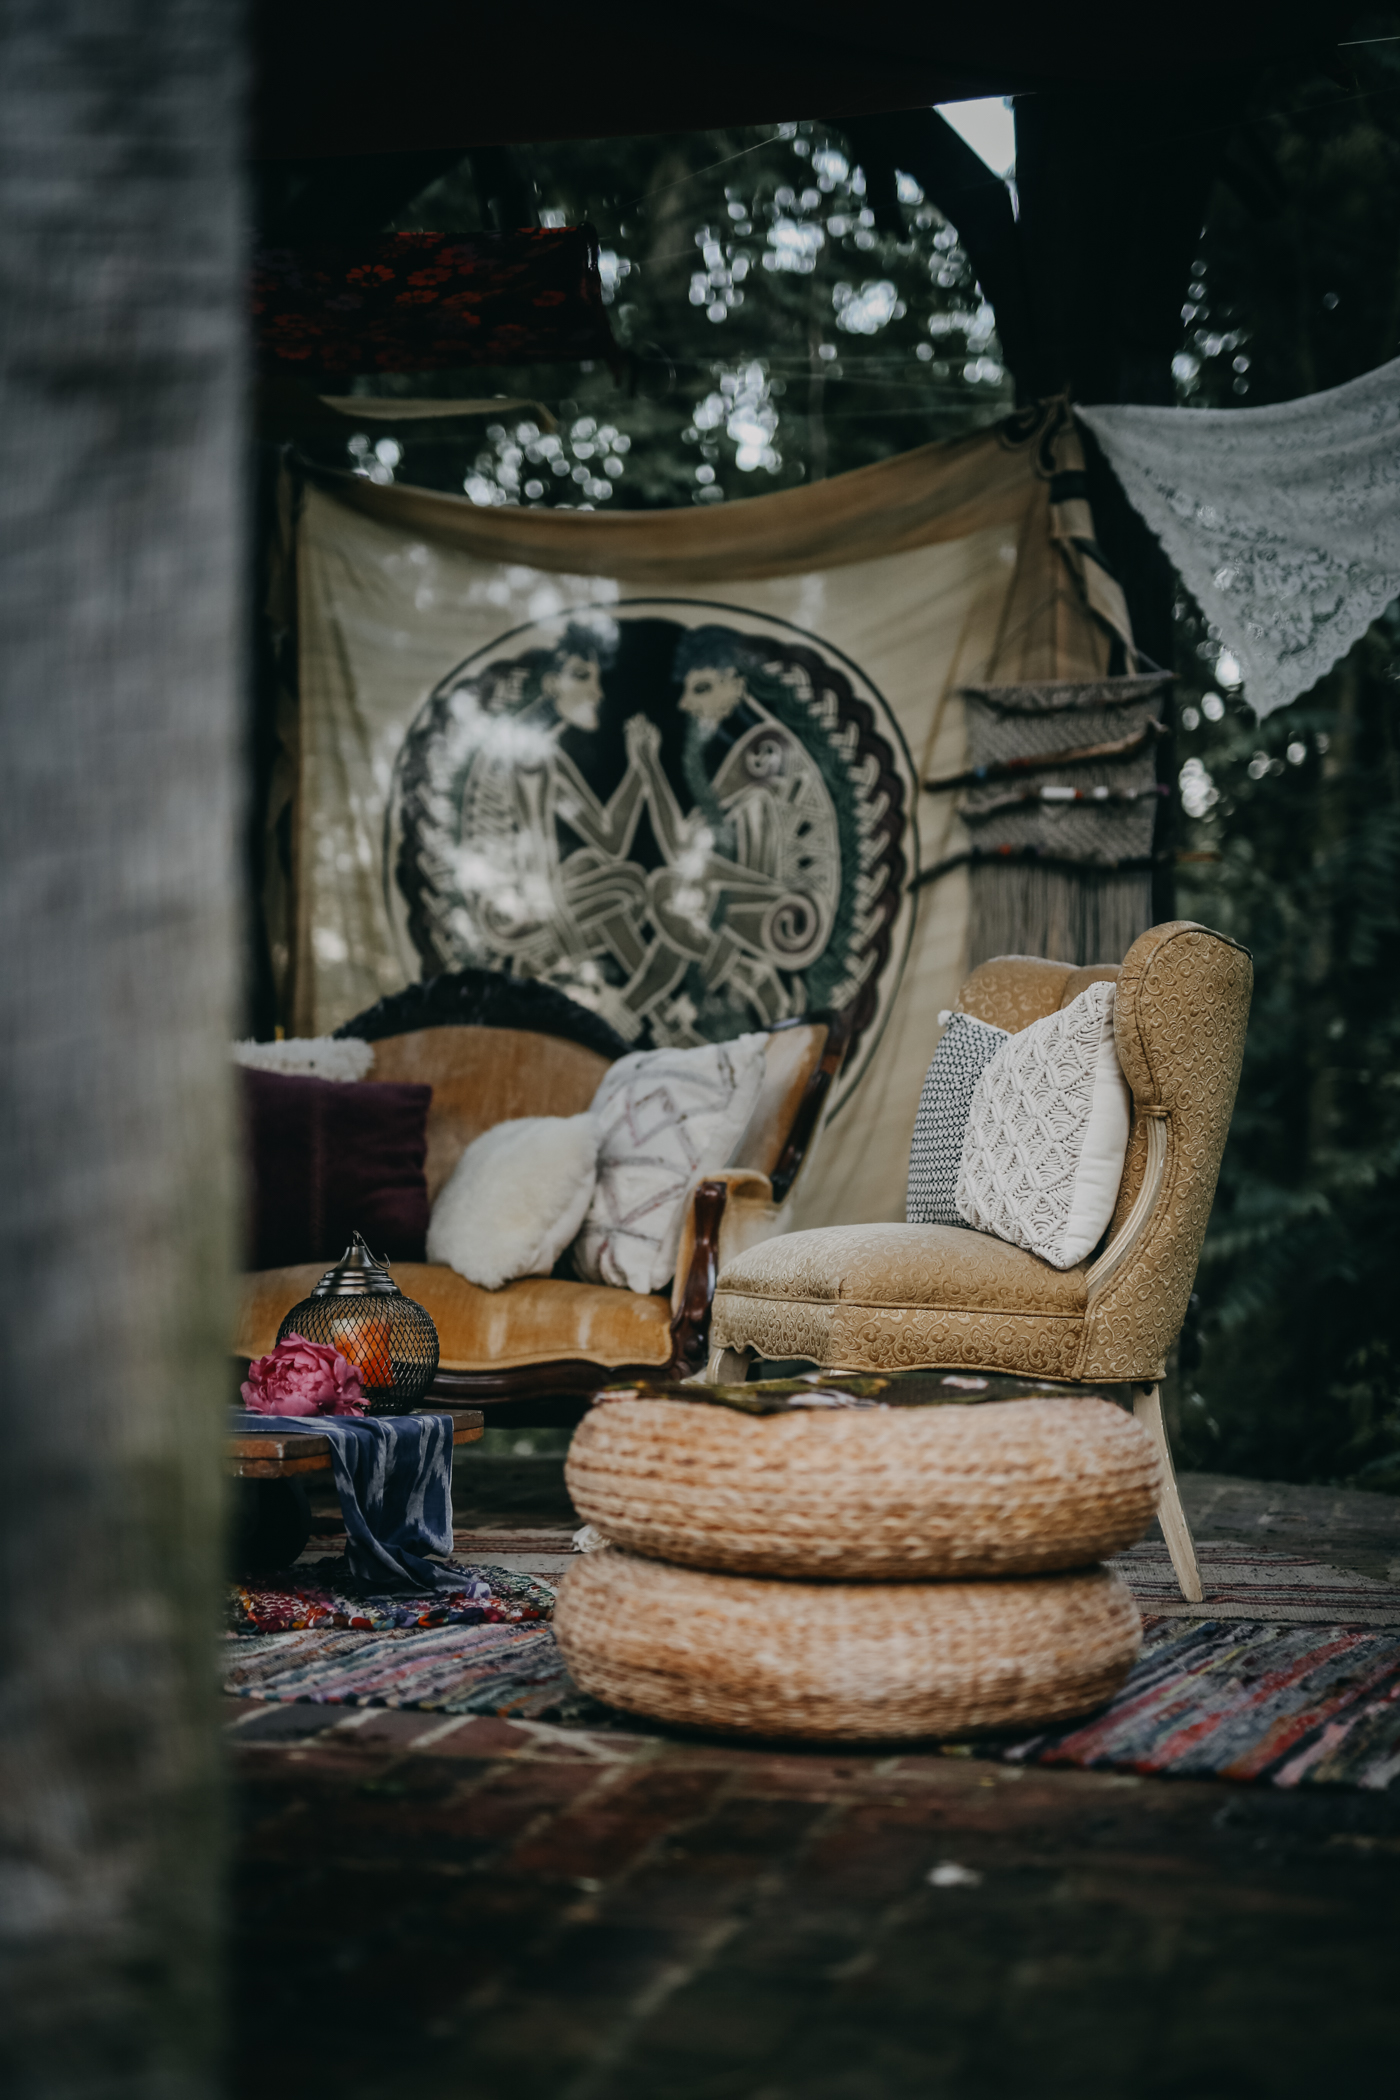 Cambria_Creative_Photography_Boho_Summer-5810.jpg